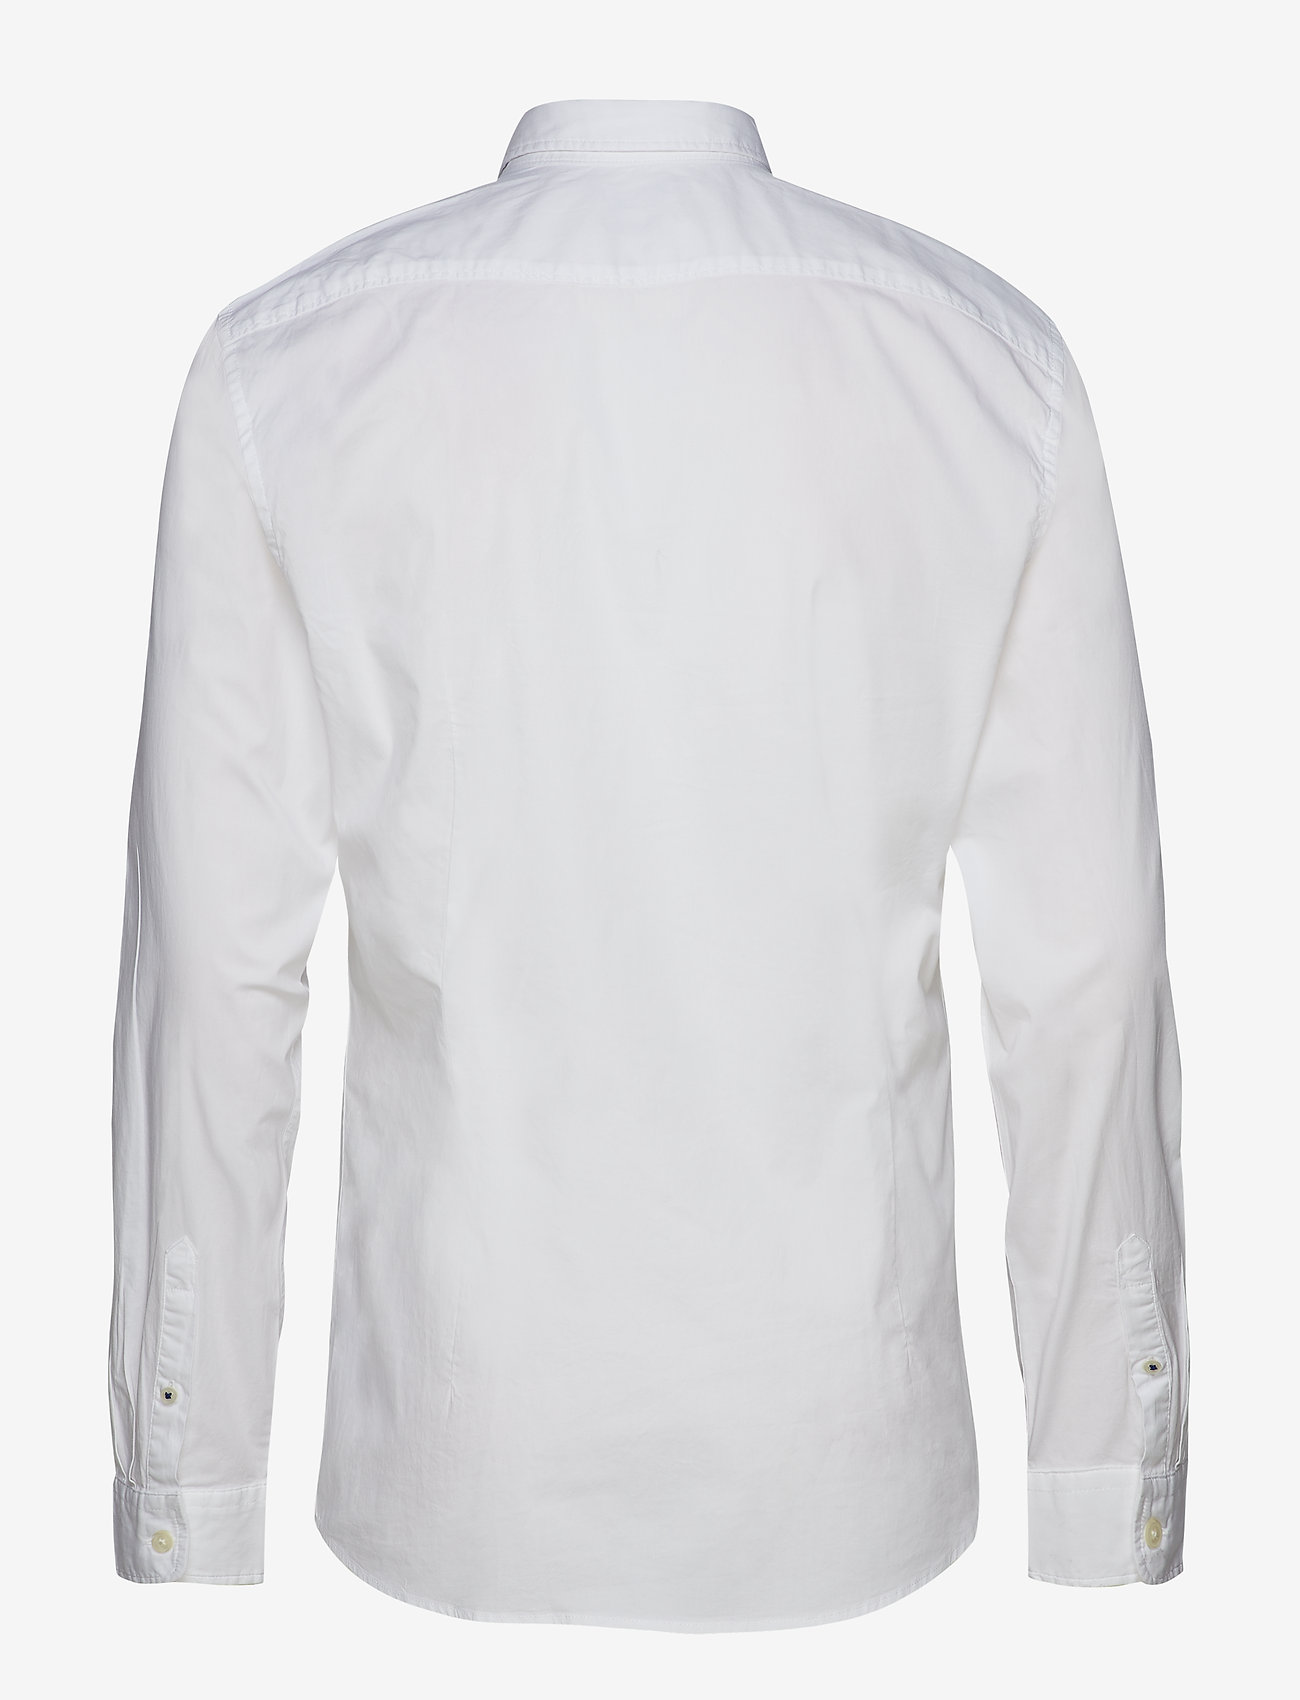 Esprit Casual - Shirts woven - formele overhemden - white - 1